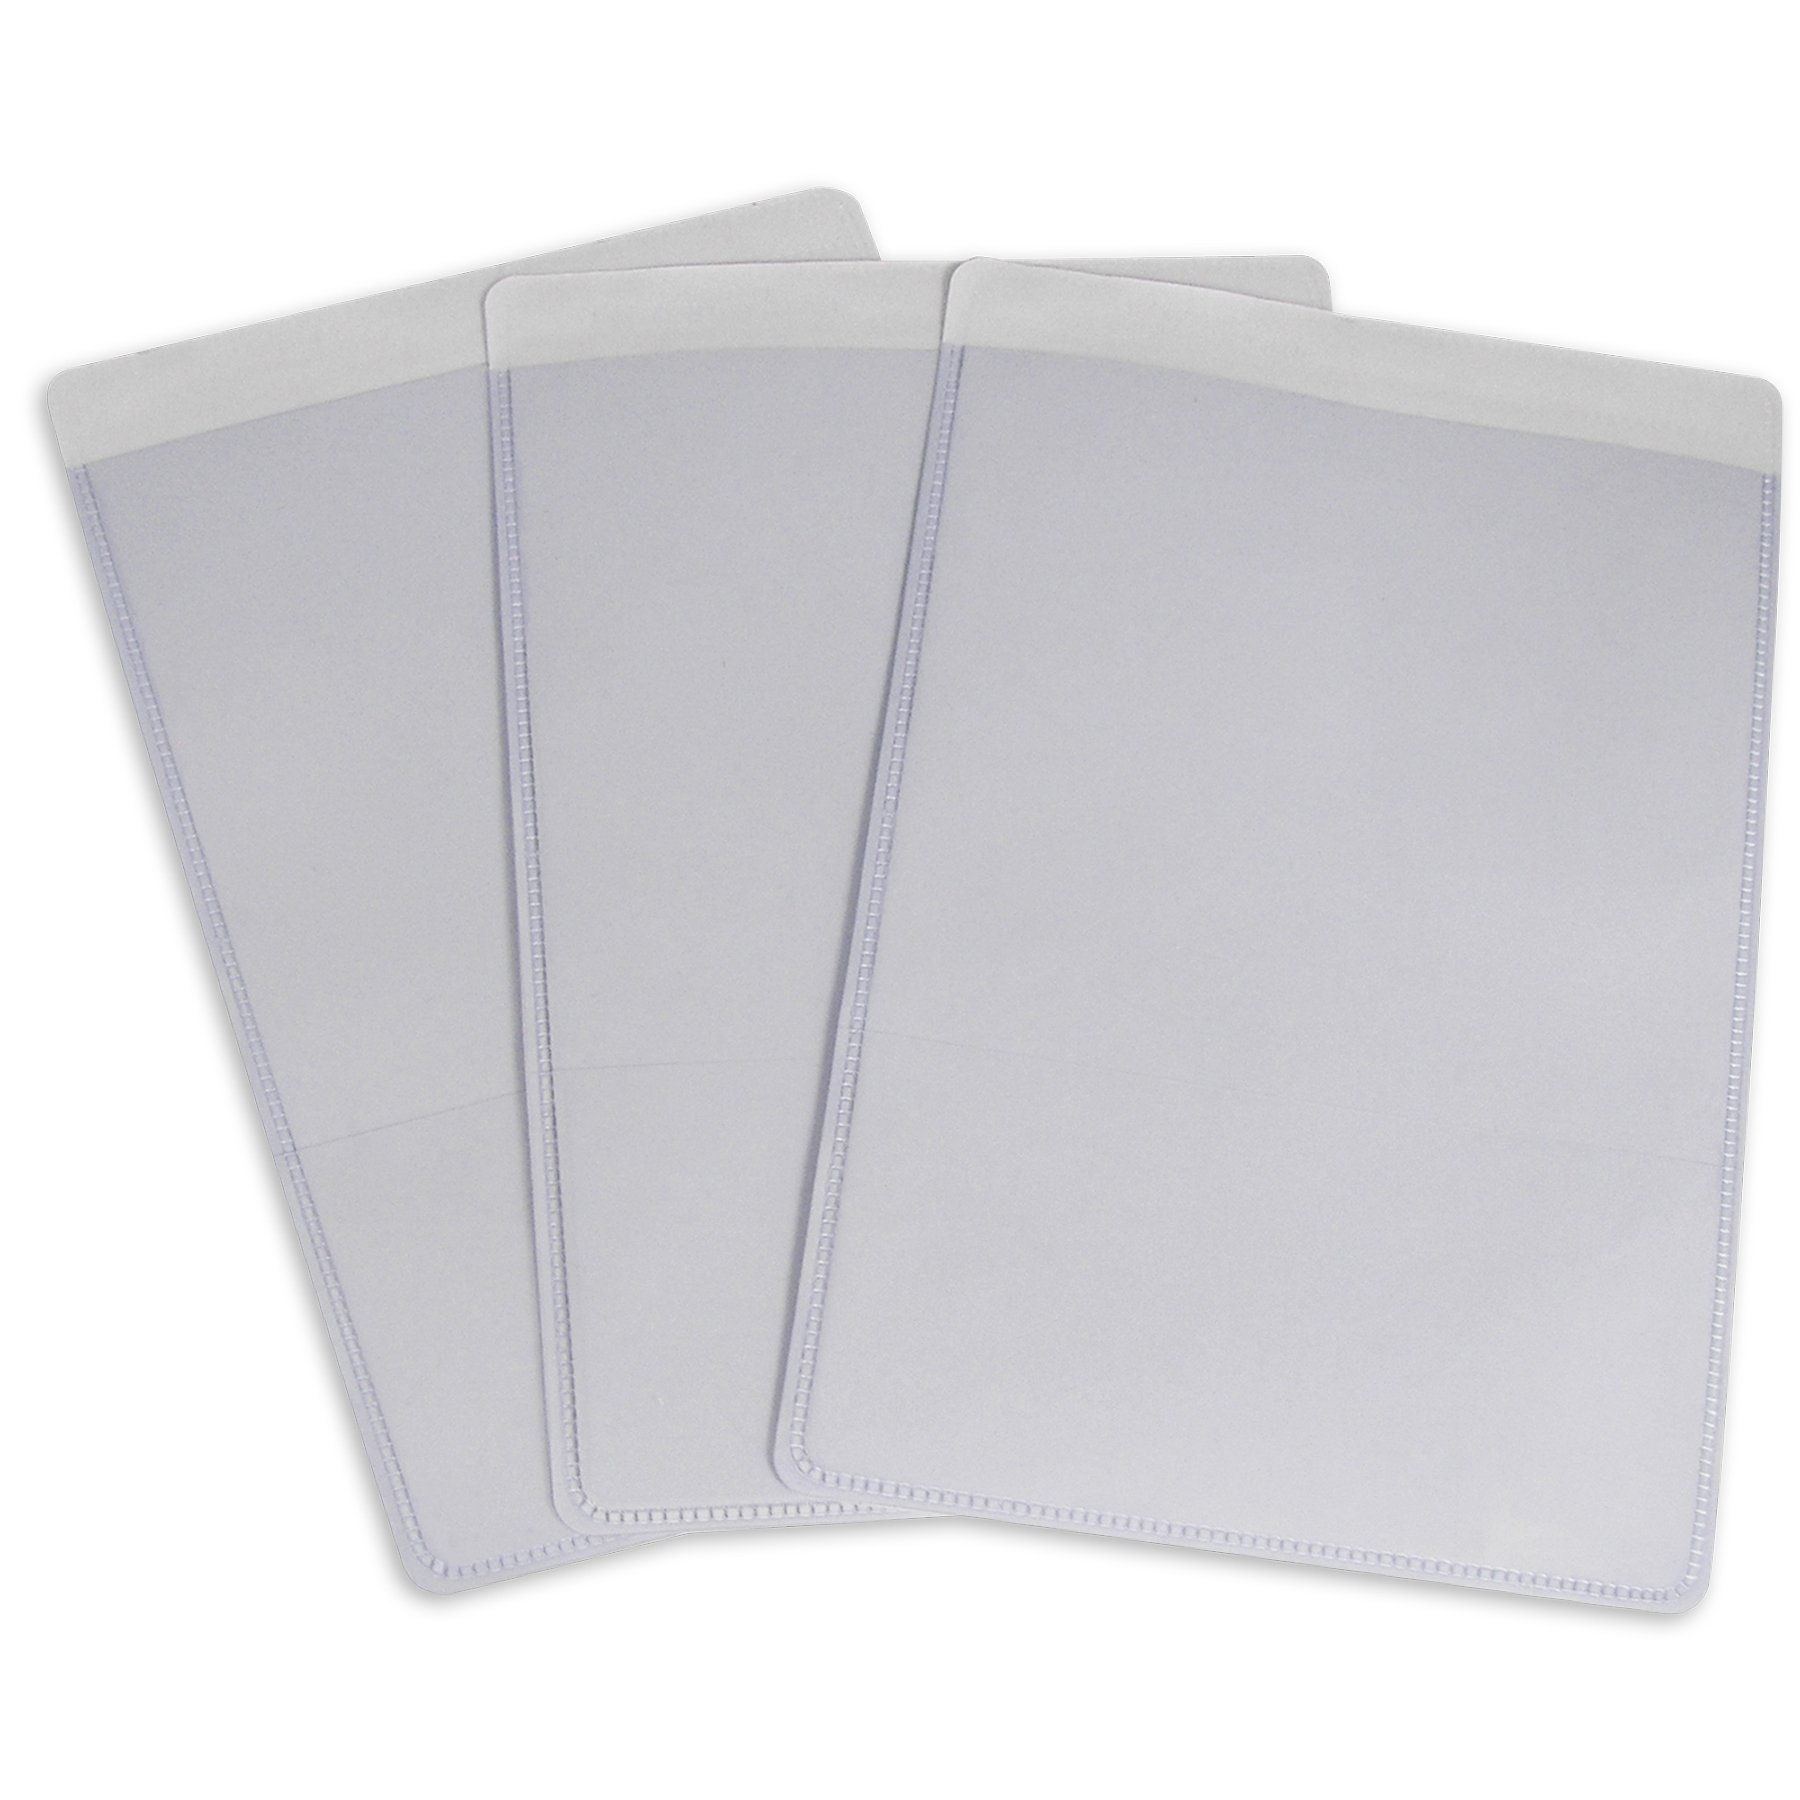 C-Line Self-Adhesive Shop Ticket Holders, 5 x 8 Inches, Clear, 50 per Box (70058) by C-Line